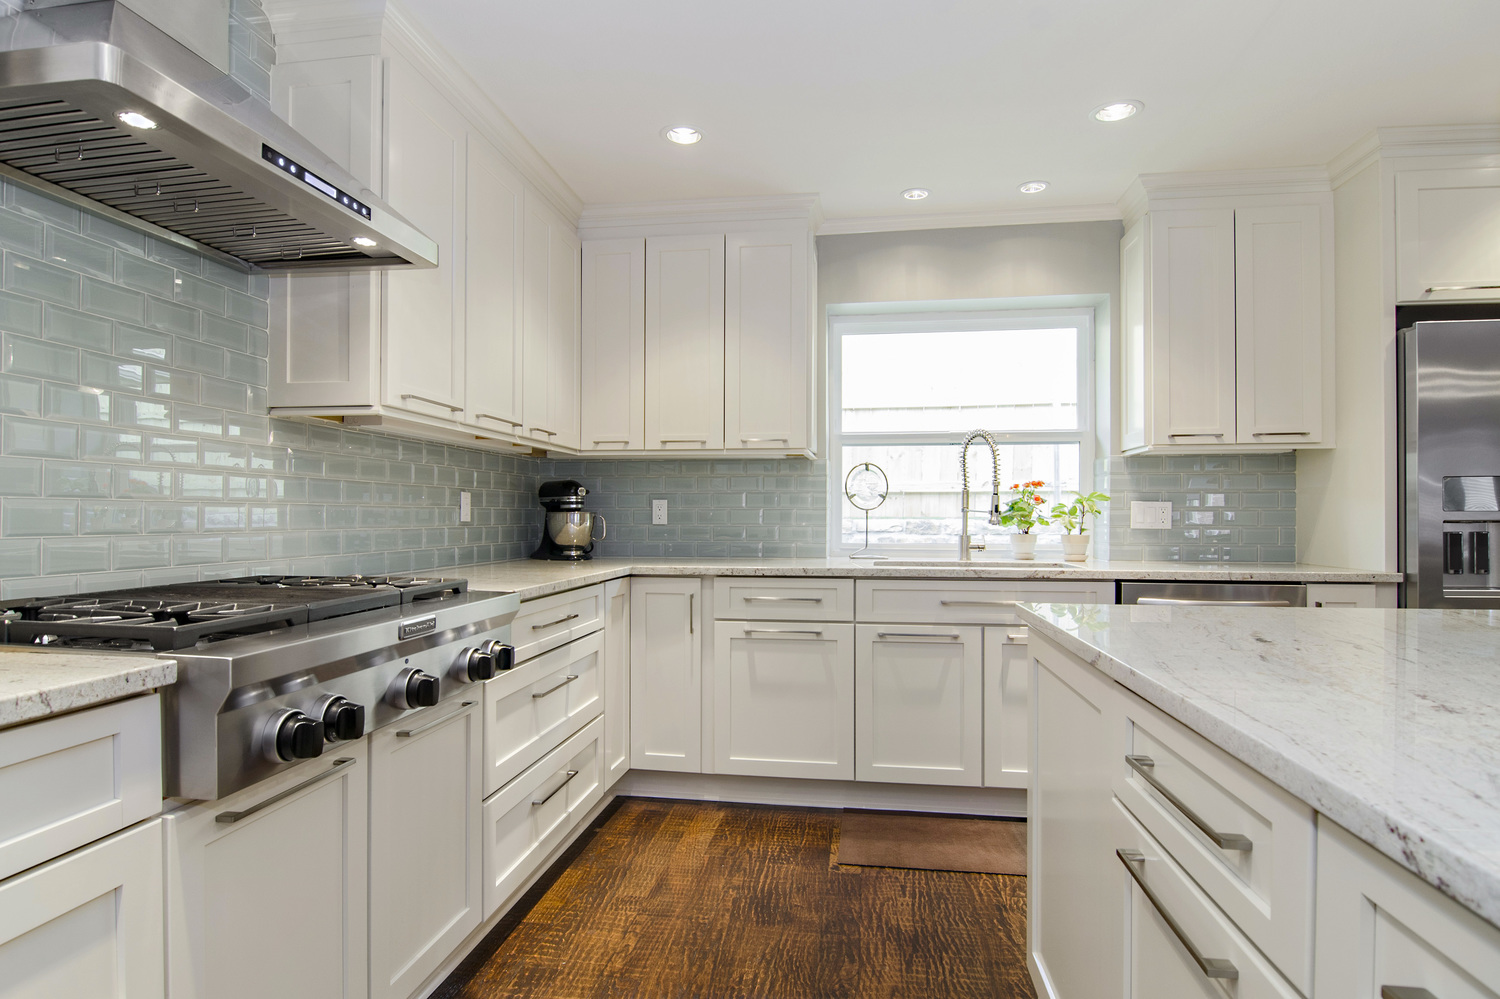 & River White Granite White Cabinets Backsplash Ideas